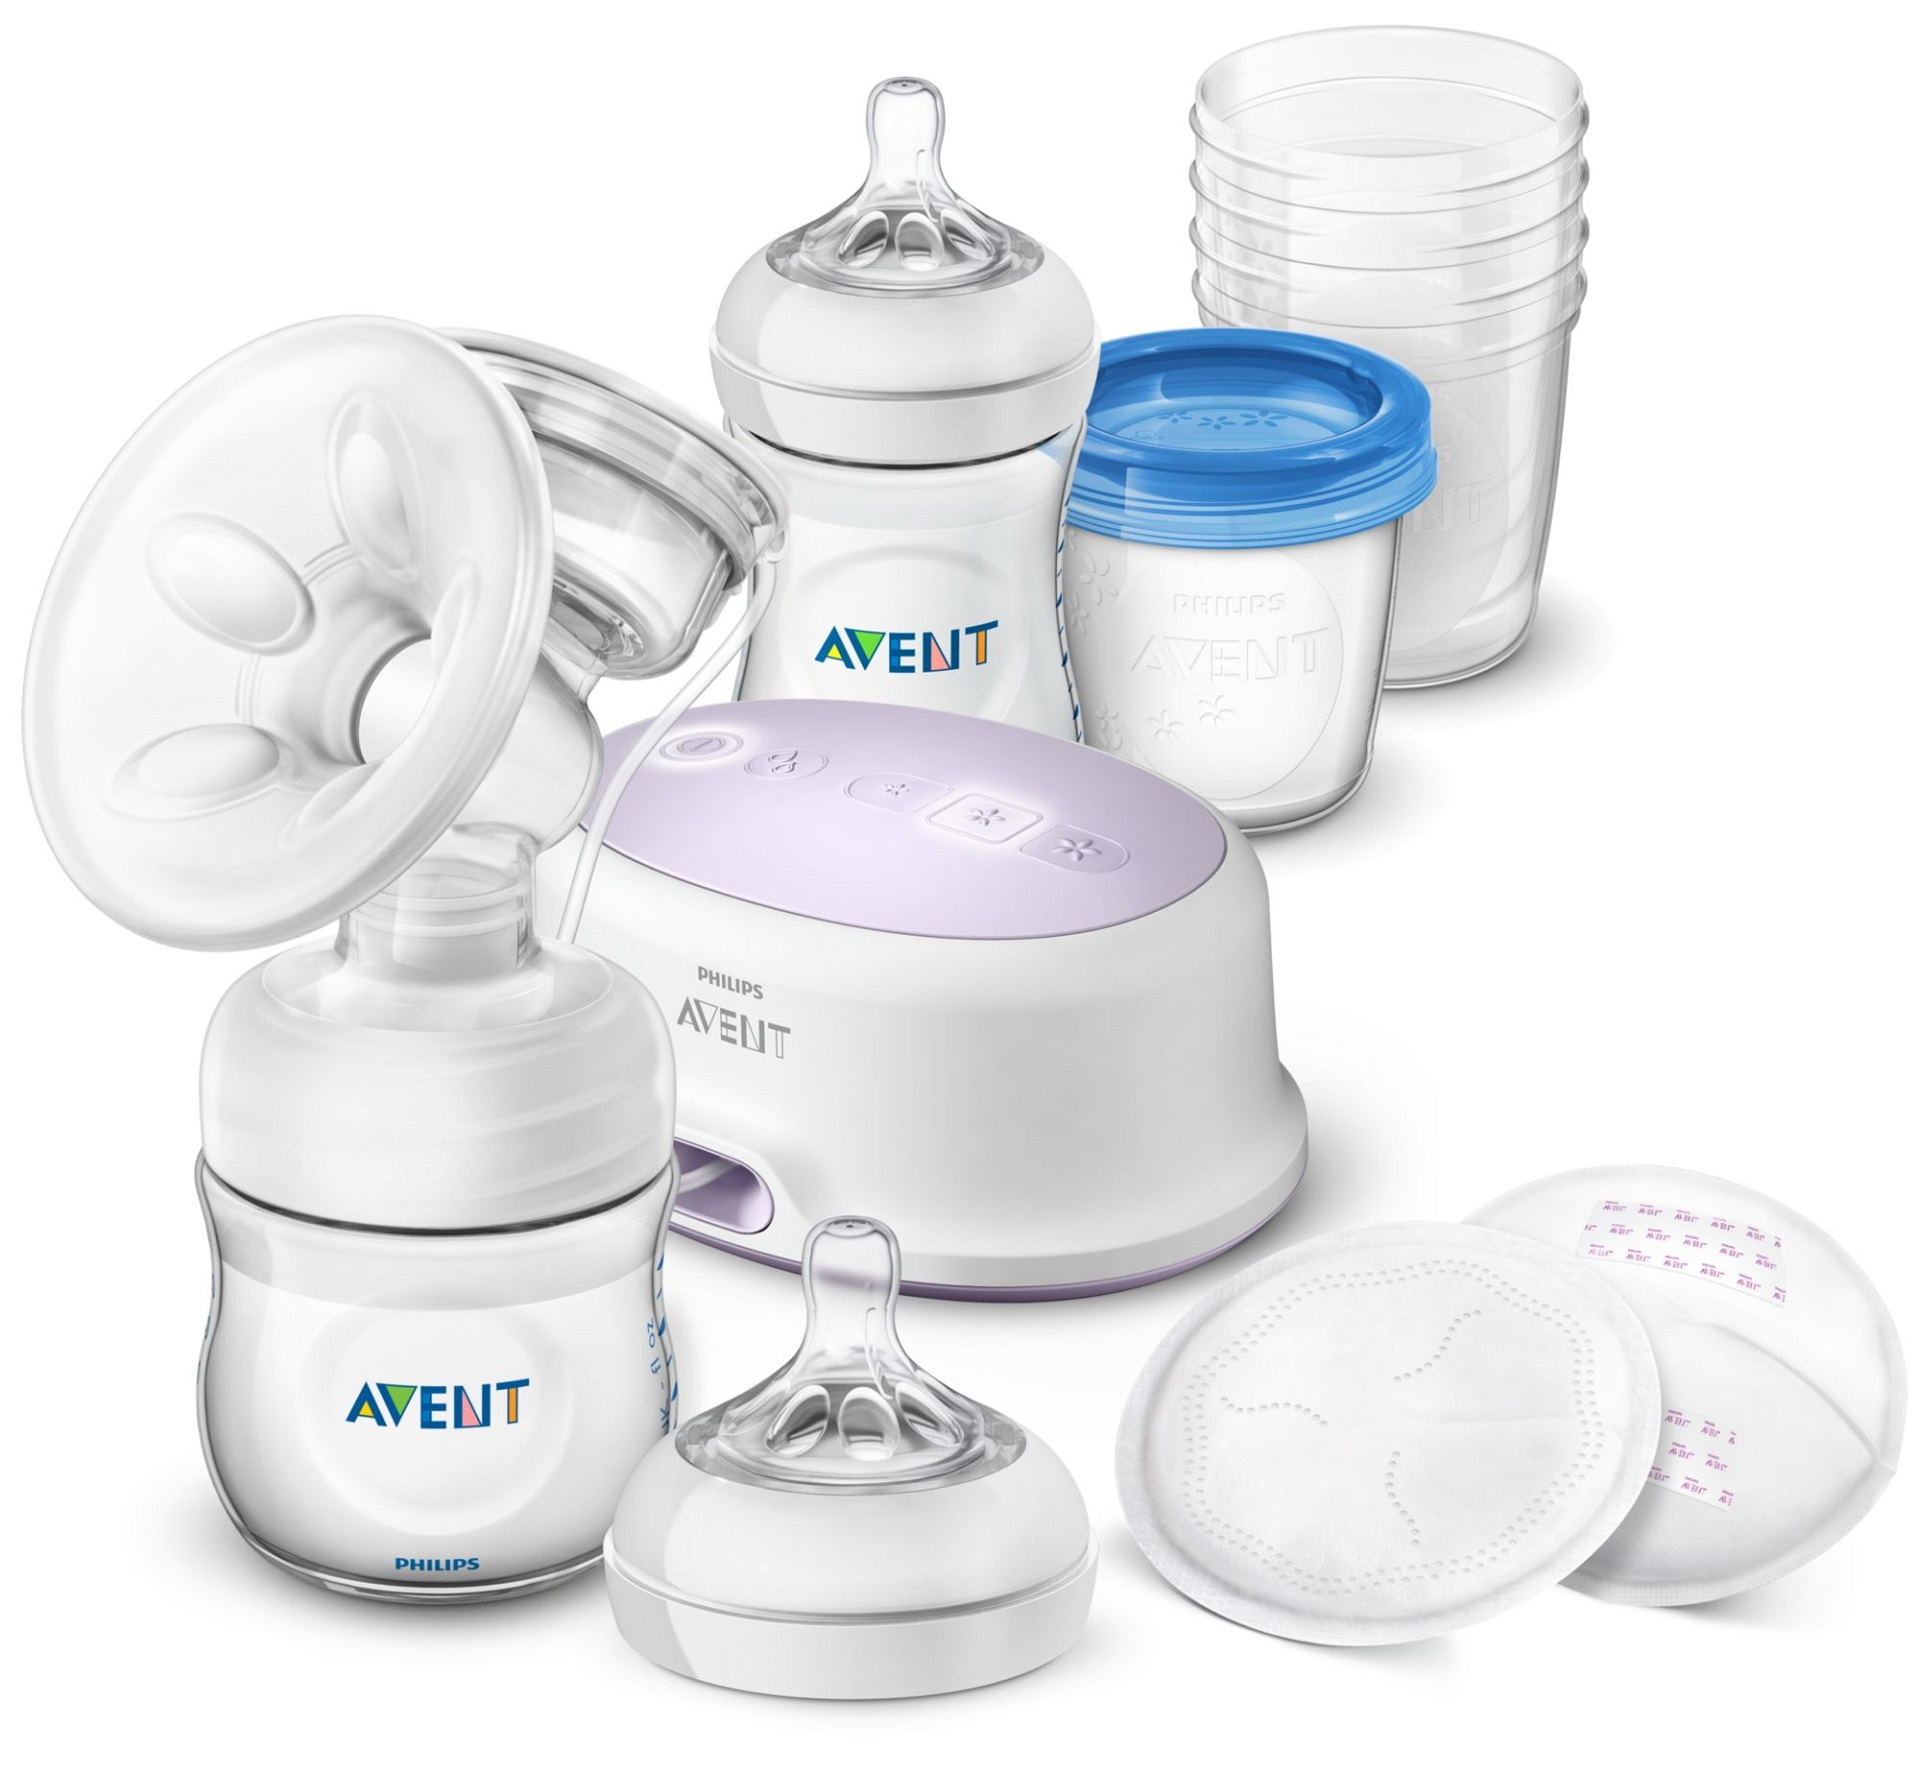 philips avent electric breast pump manual